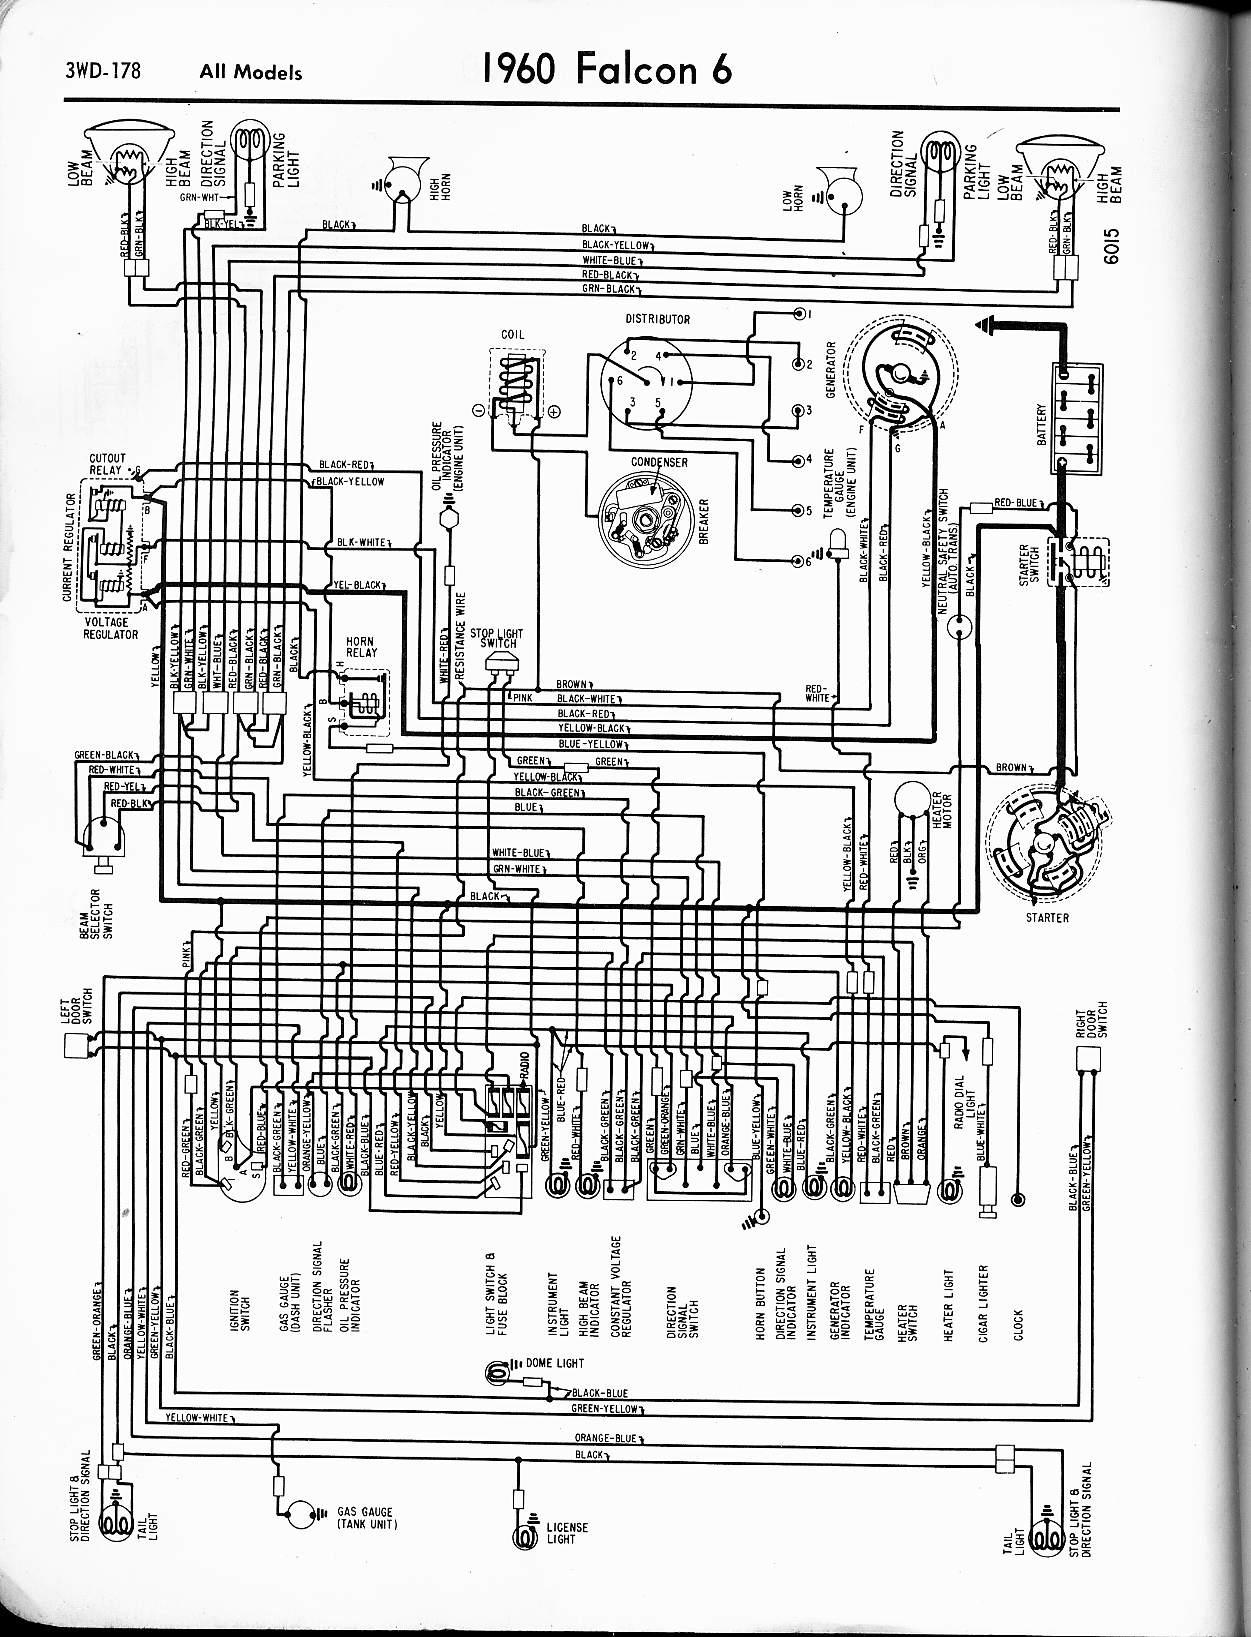 hight resolution of wiring diagram for 1965 ford falcon schematic diagram database 1965 ford falcon turn signal wiring diagram 1965 ford ranchero wiring diagram